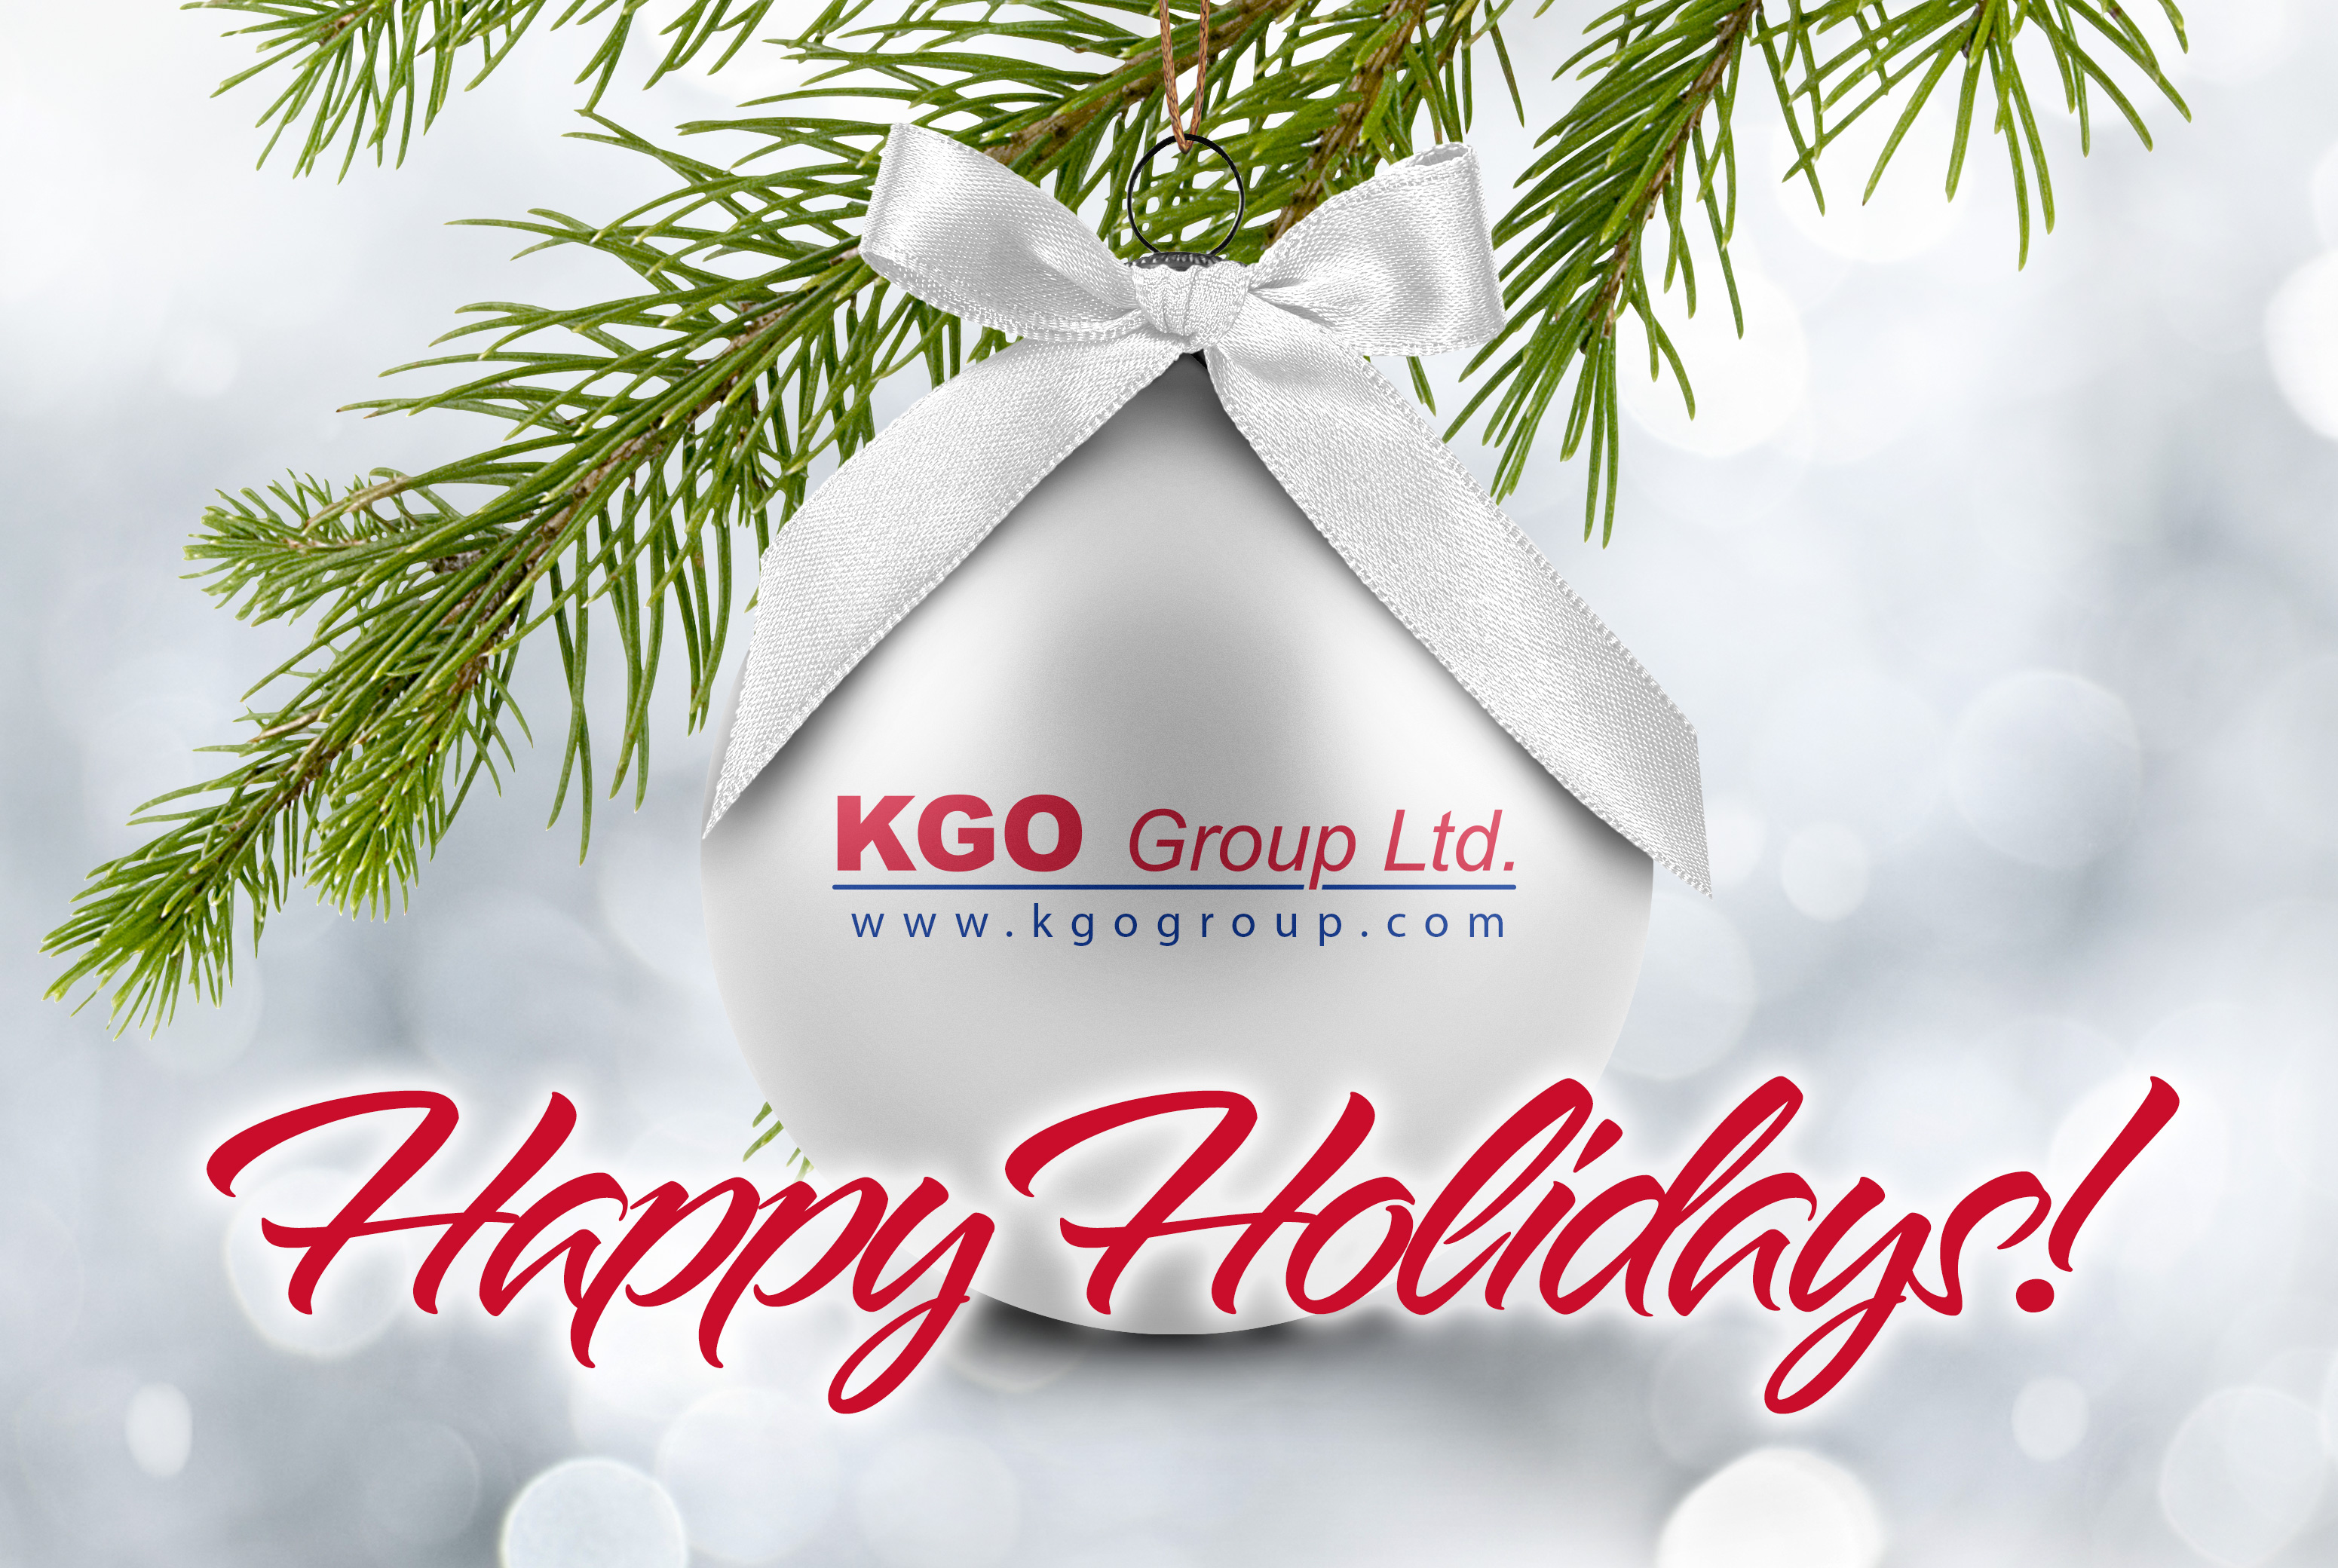 """Happy Holiday"""" – Pumps, Tanks, Mixers, Filtration, Chemical Process ..."""